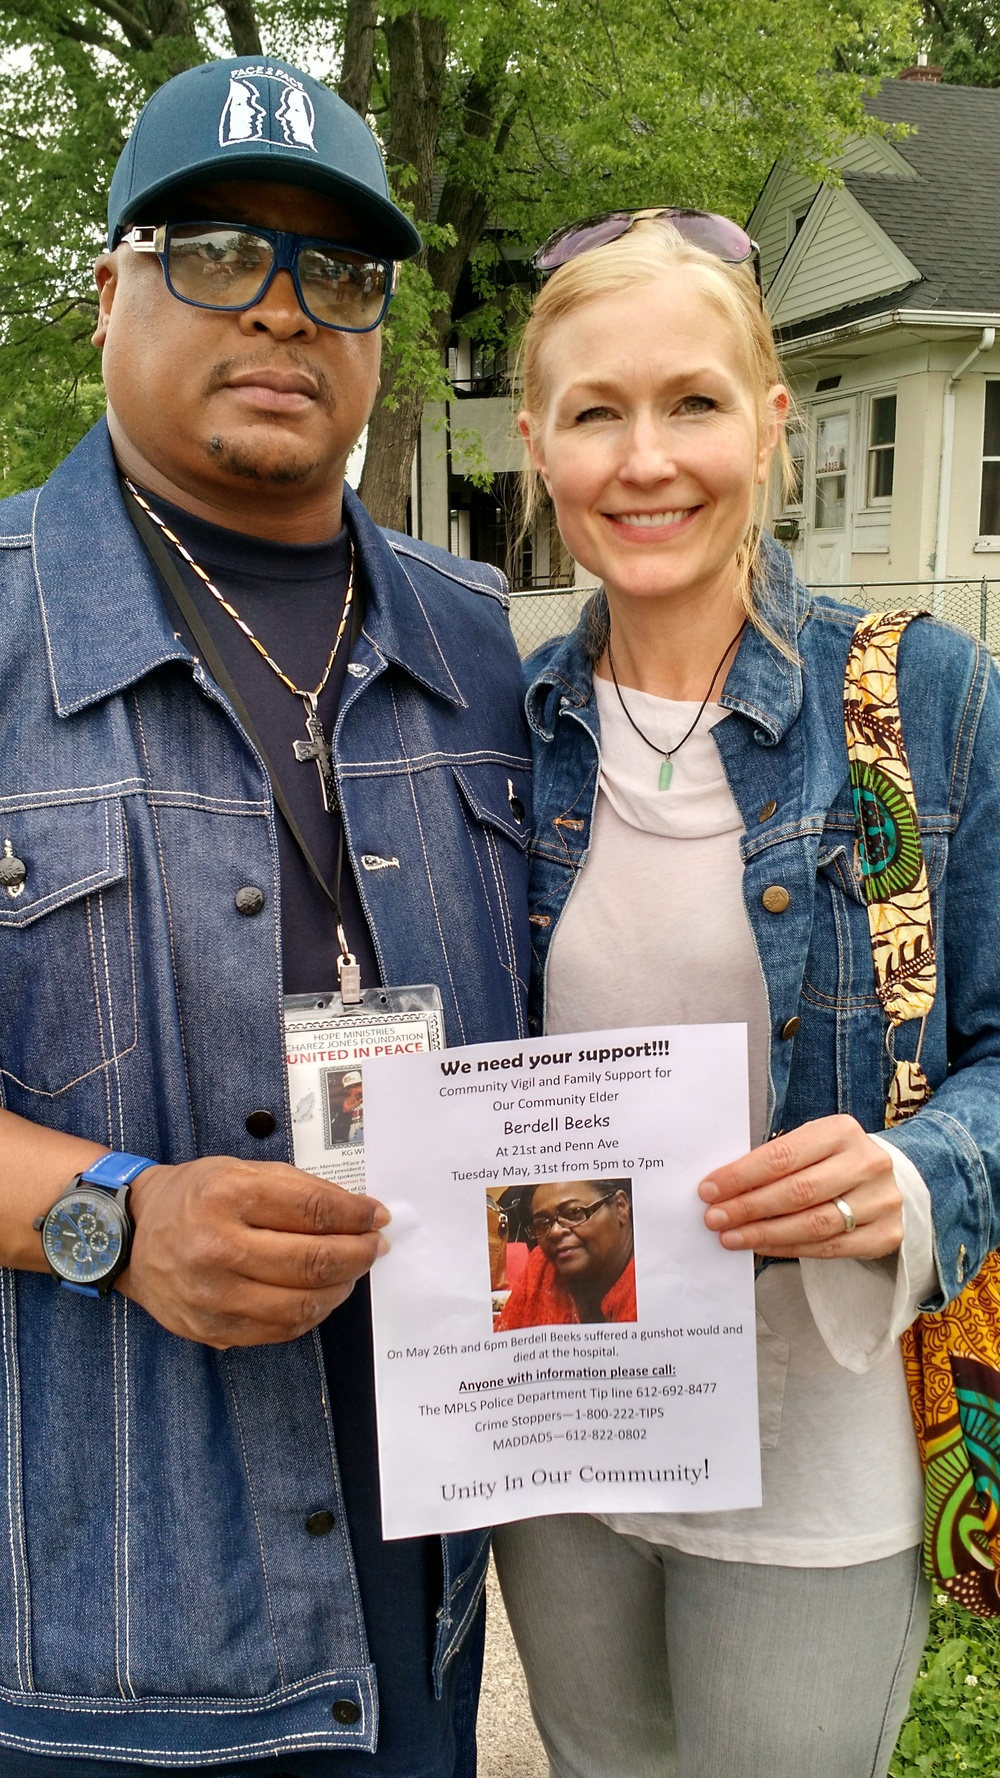 North Minneapolis peace activist (and friend) Kay G Wilson and me at Birdell Beeks' vigil.